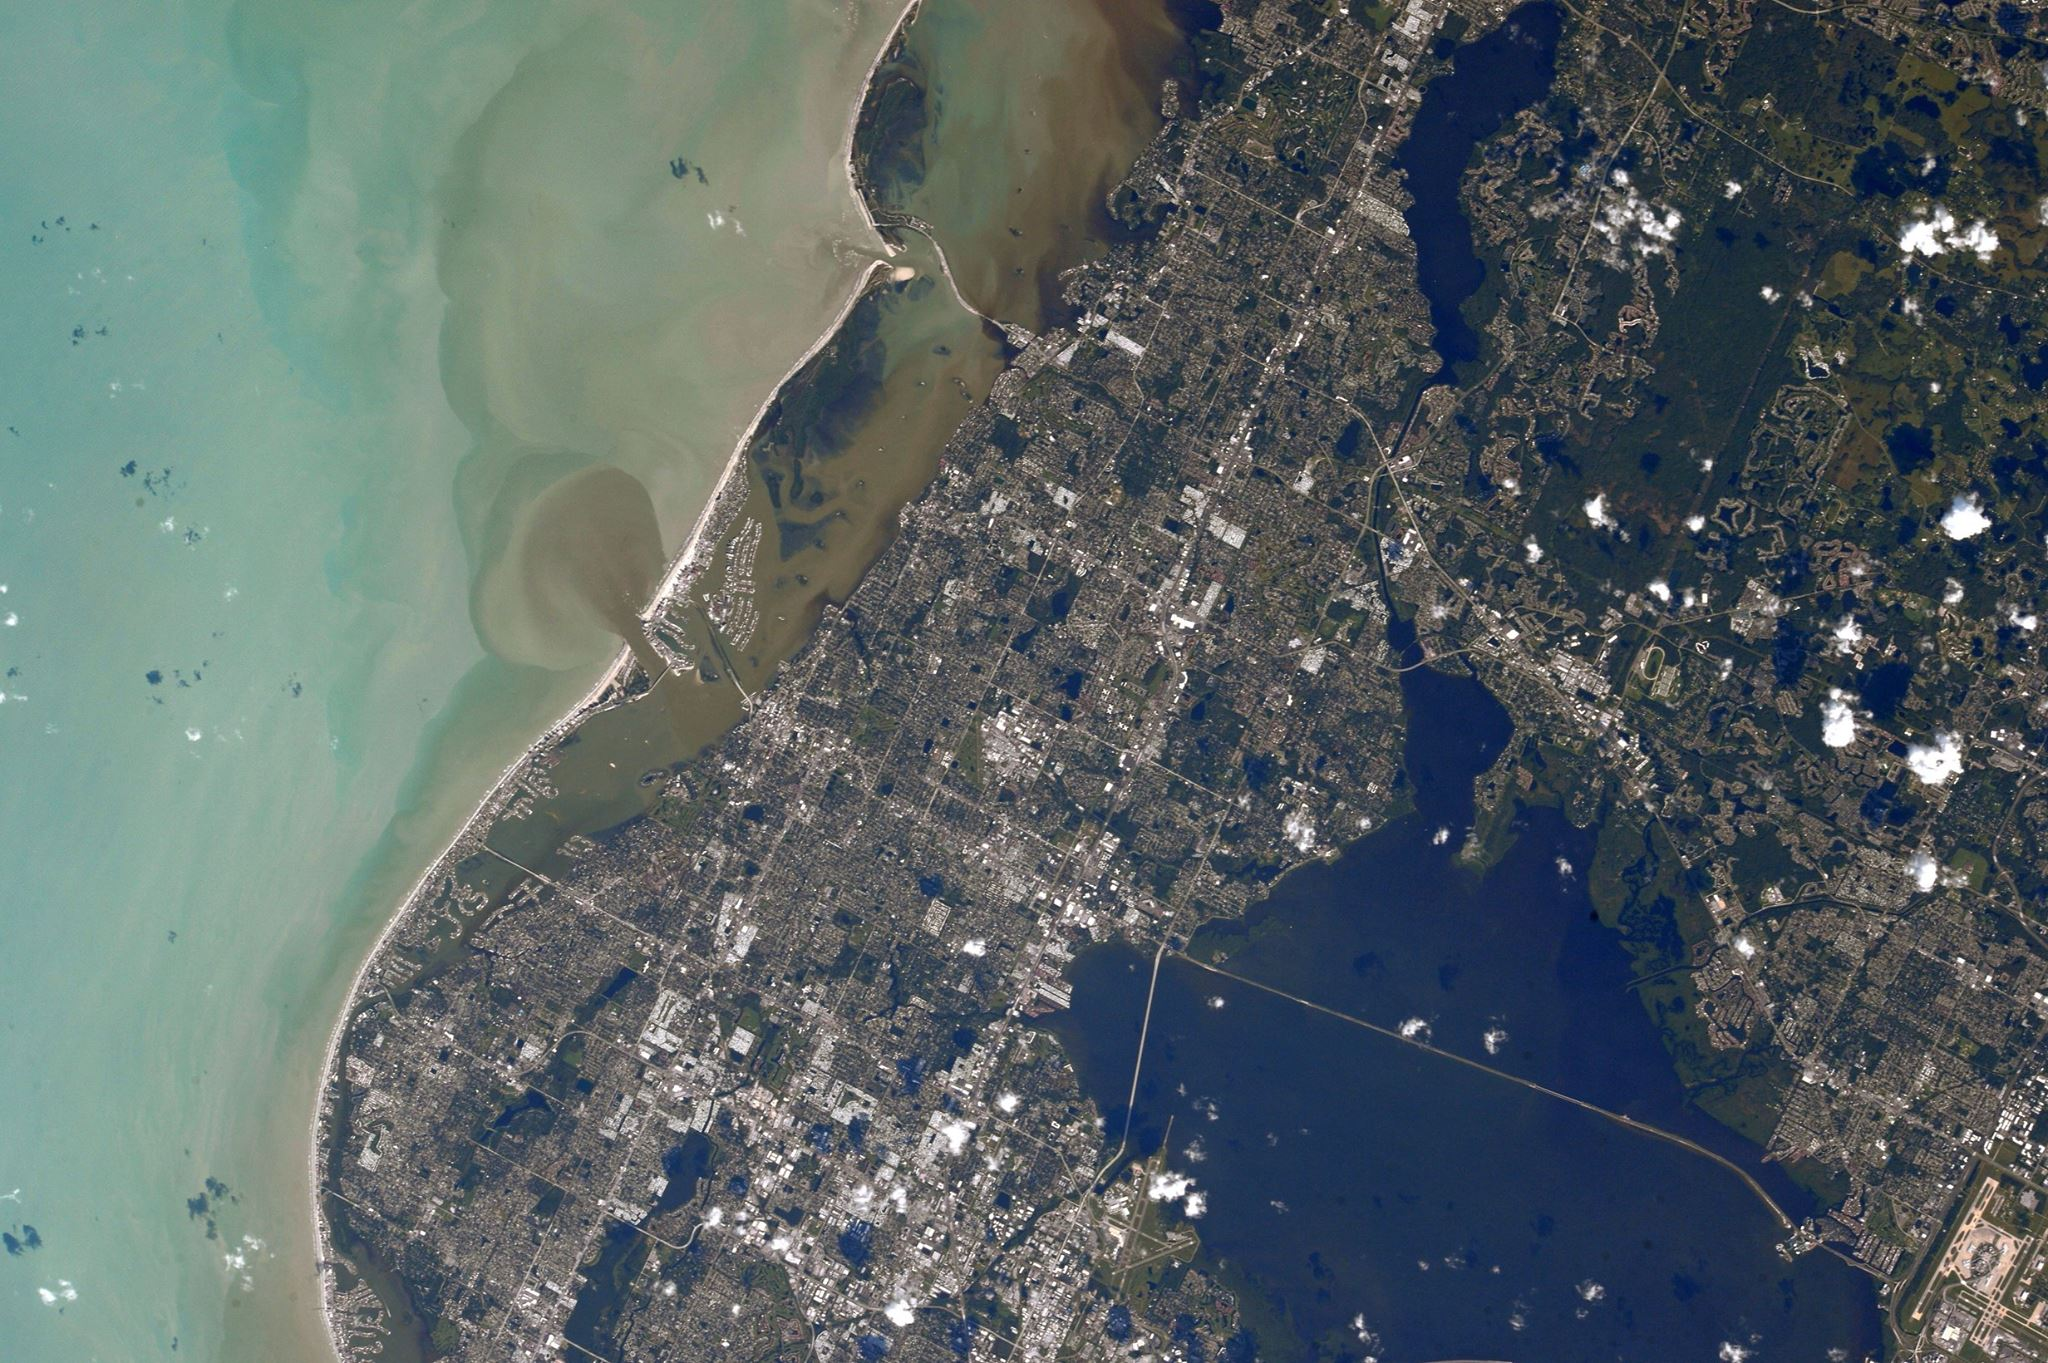 Photos from Randy Bresnik on the International Space Station showing the sediment churned by Hurricane Irma in Florida and the Caribbean. (Photo: Randy Bresnik / NASA)